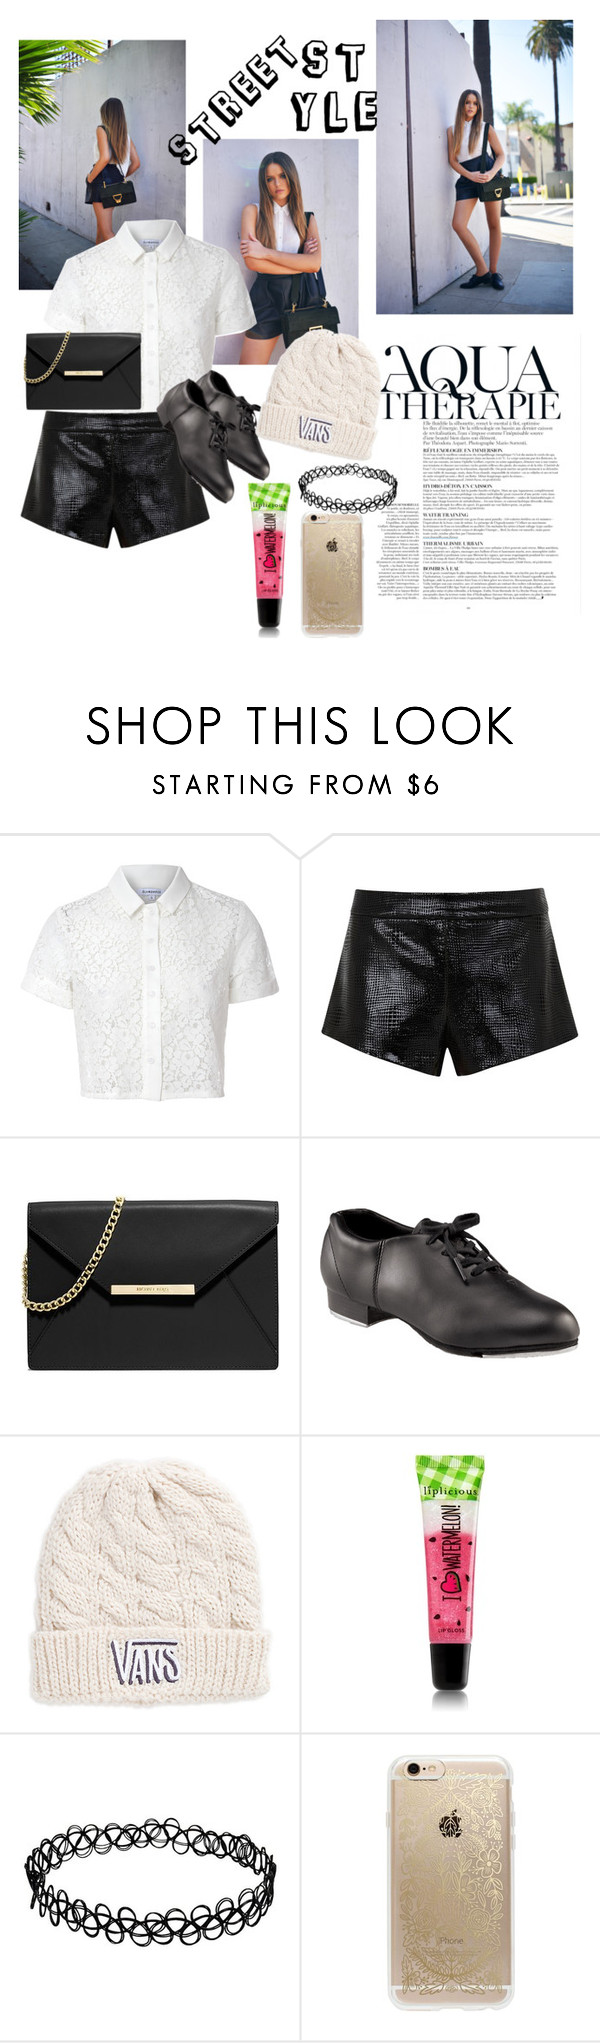 """street style"" by berry-queen ❤ liked on Polyvore featuring Anja, Glamorous, Mason by Michelle Mason, MICHAEL Michael Kors, Capezio Dance, Vans and Rifle Paper Co"